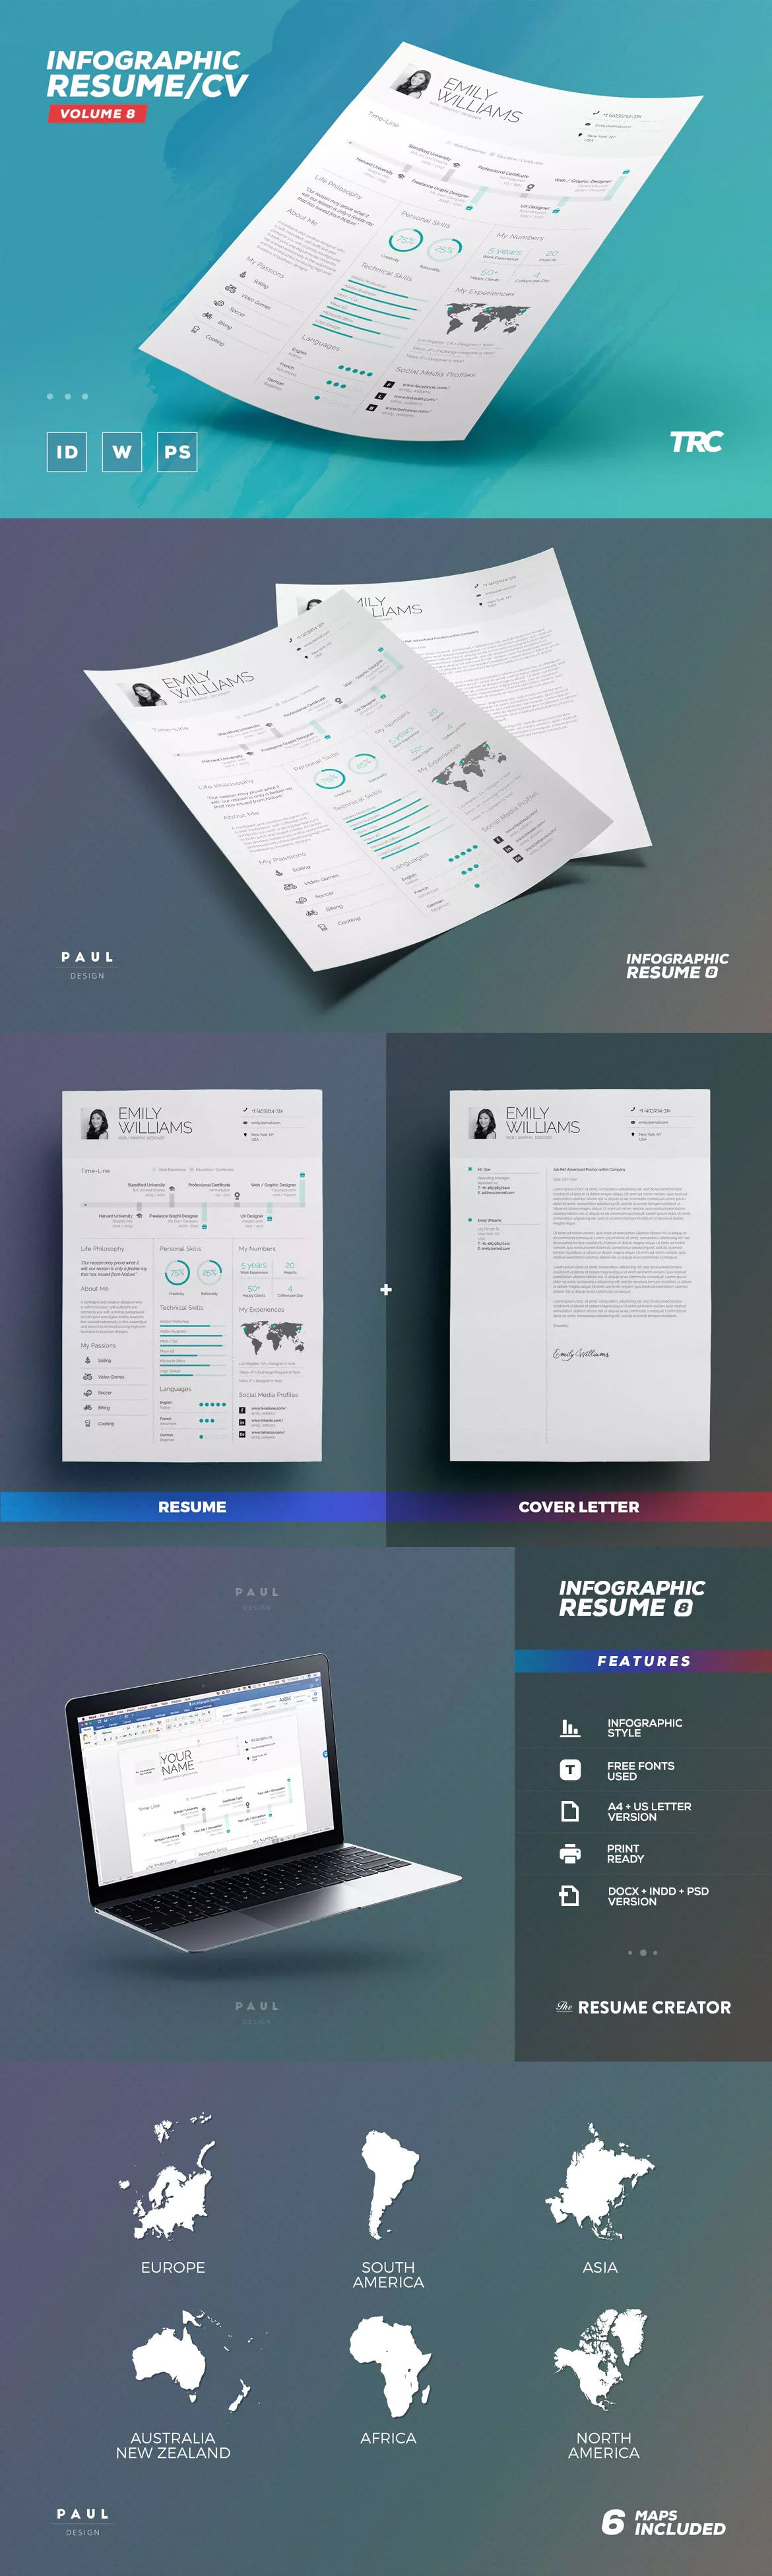 Resume Template Indesign Infographic Resume  Cv Template Indd Psd  A4 And Us Letter Size